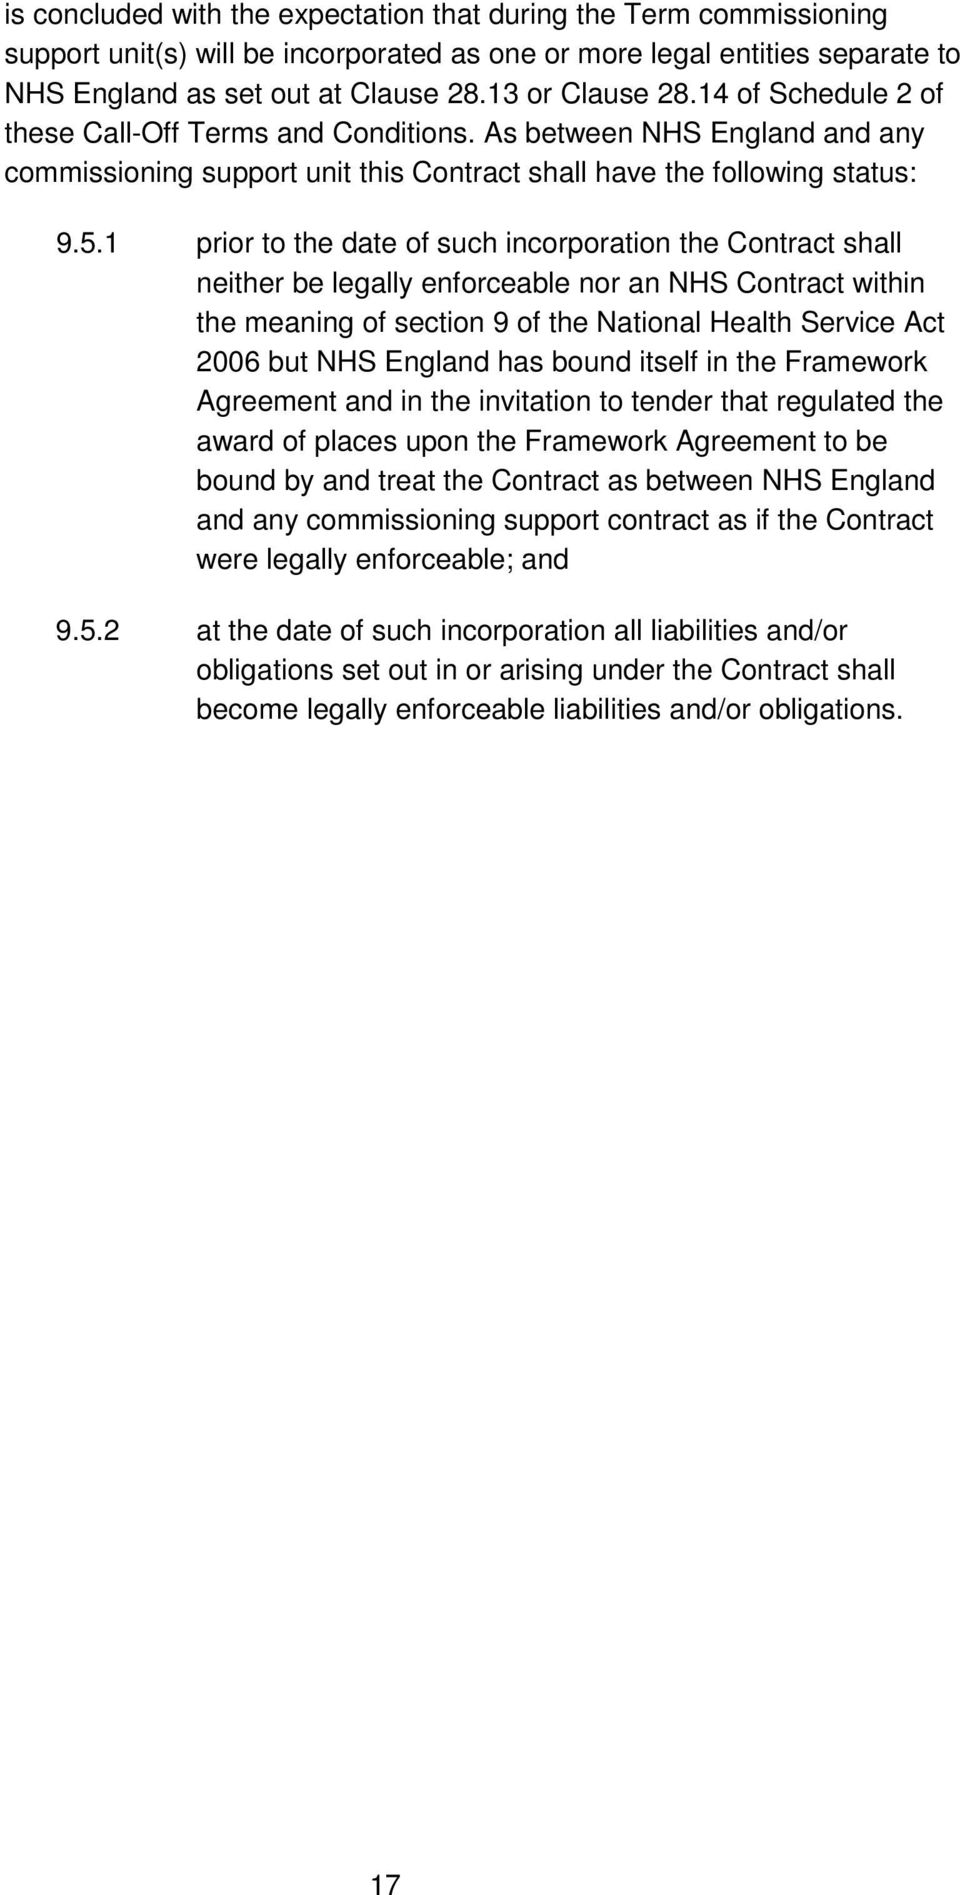 1 prior to the date of such incorporation the Contract shall neither be legally enforceable nor an NHS Contract within the meaning of section 9 of the National Health Service Act 2006 but NHS England